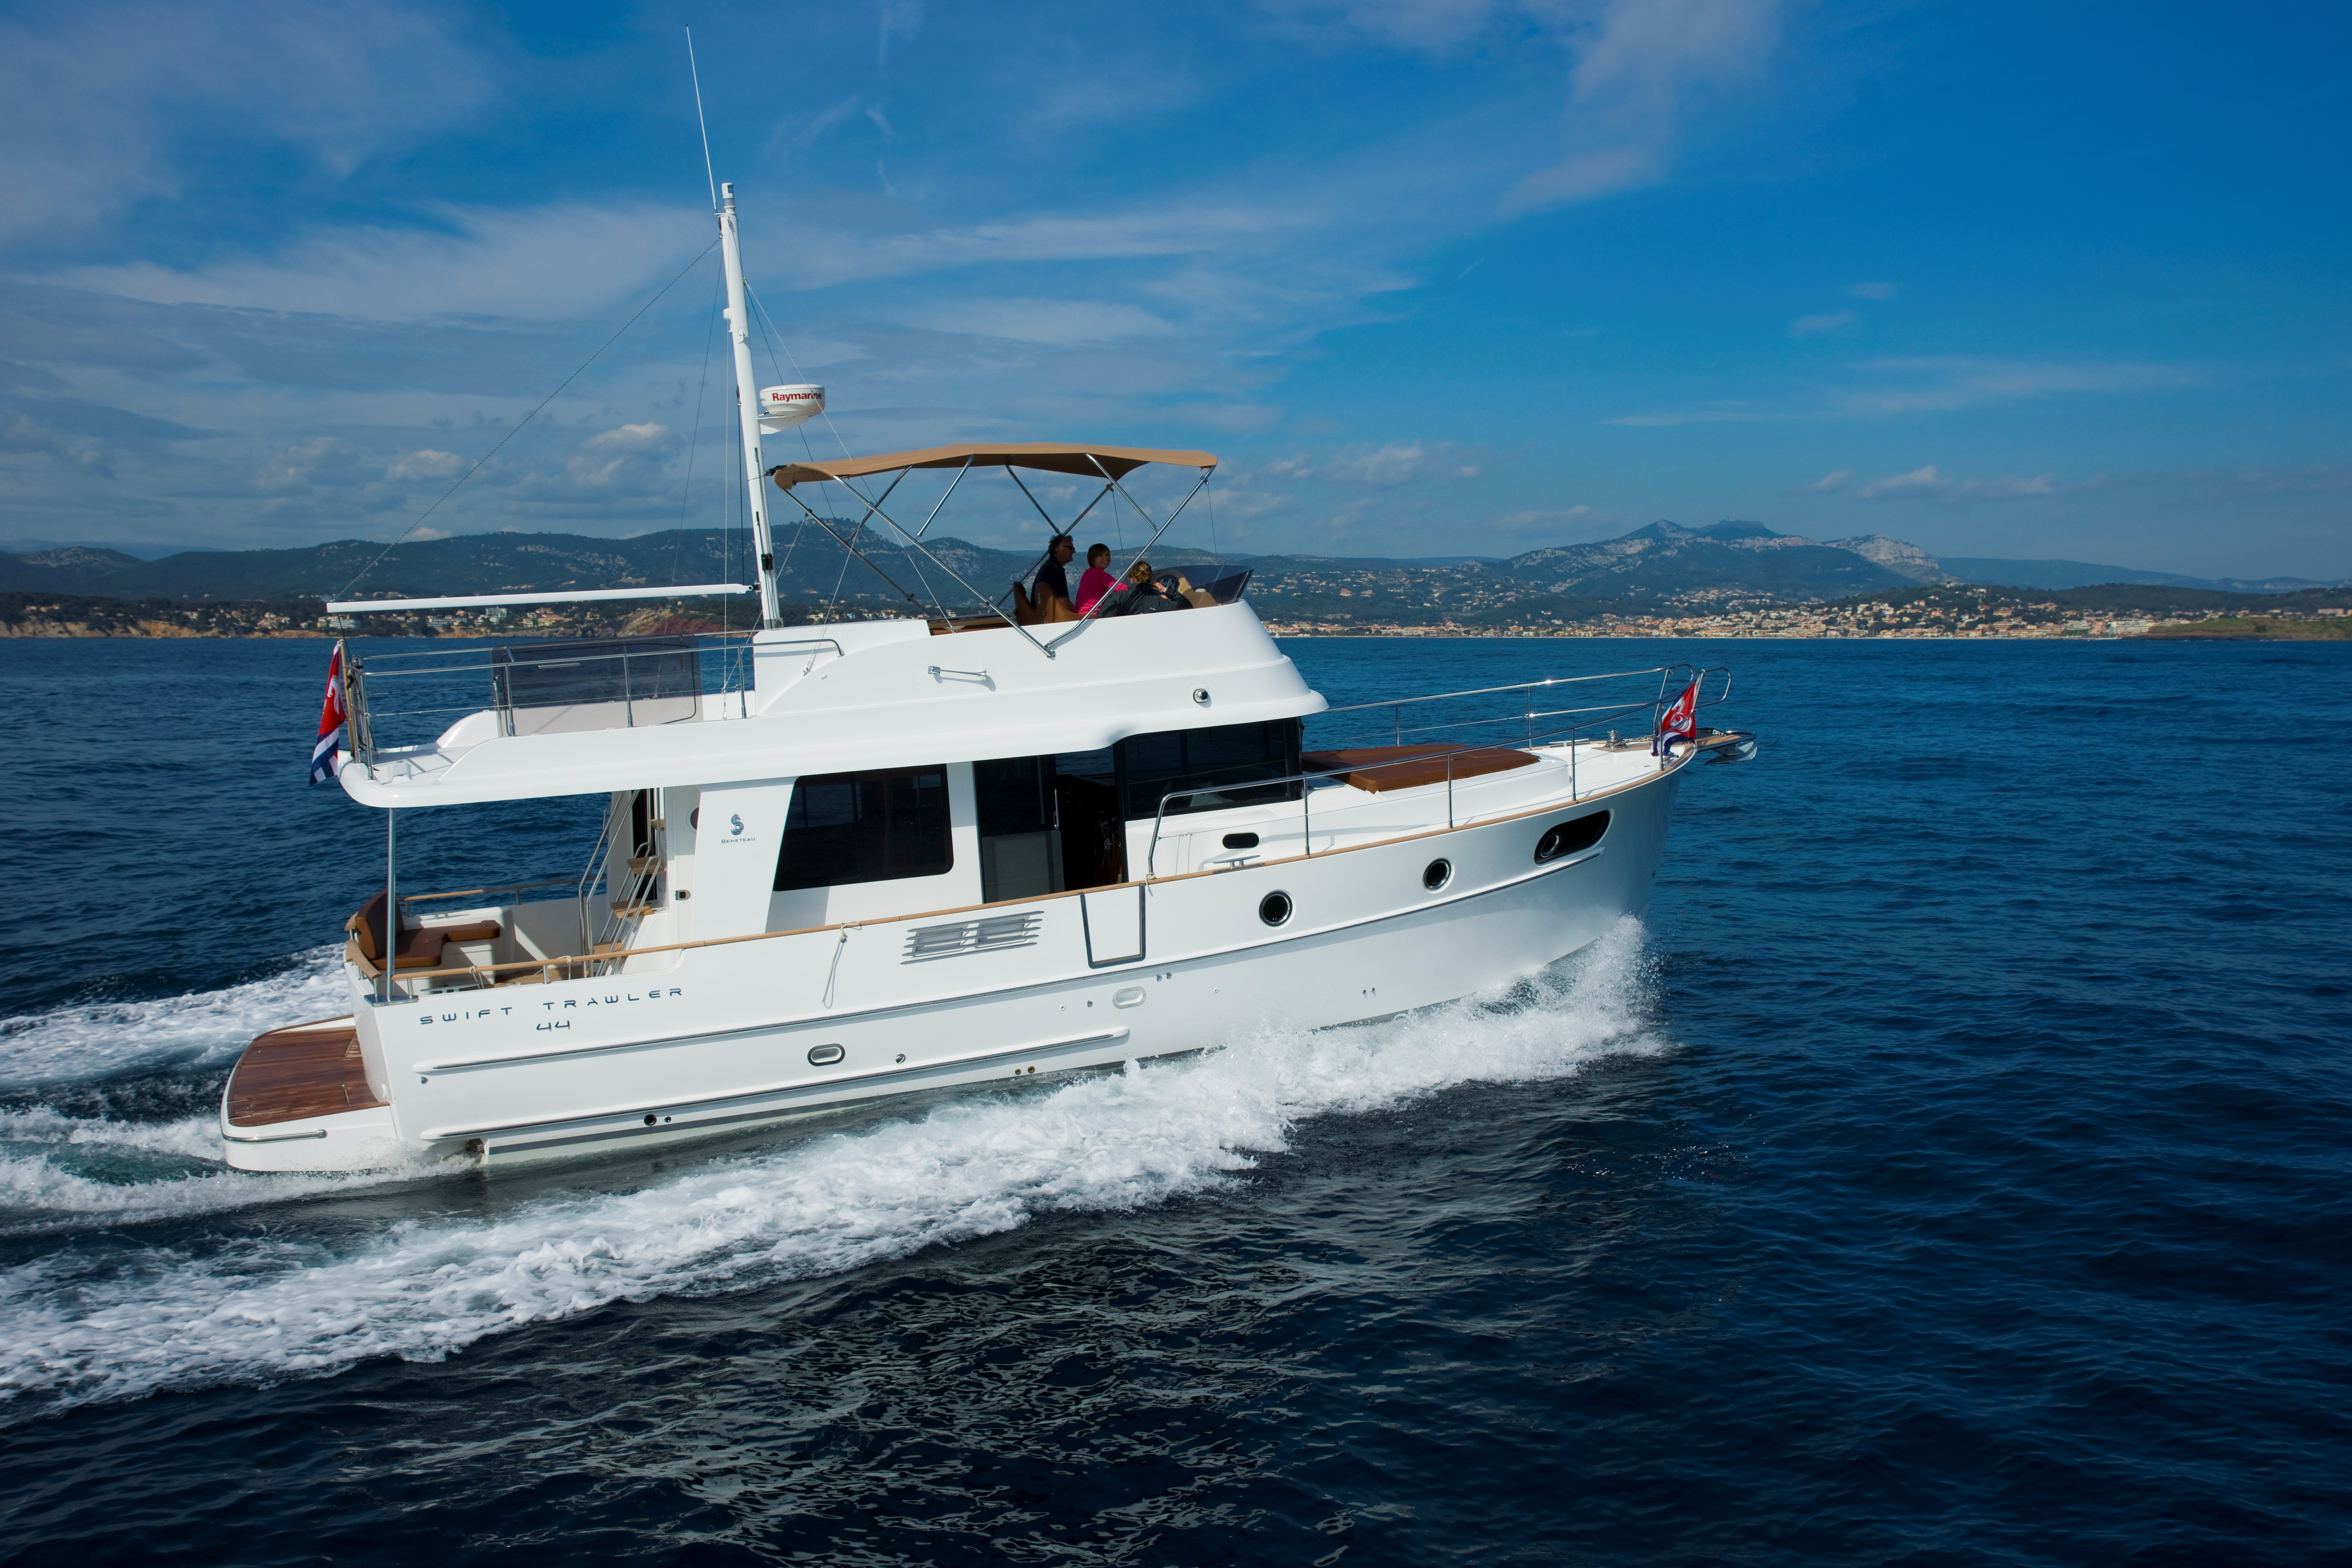 Rent / charter Luxury Yacht & Motor Boat for Boat Parties, Conference & Incentive / Meetings / Corporate, Full Day Tour, Half Day Tour, Harbour Cruise, Private Charter & Team Building Activities in Malta & Gozo - Beneteau Swift Trawler 44